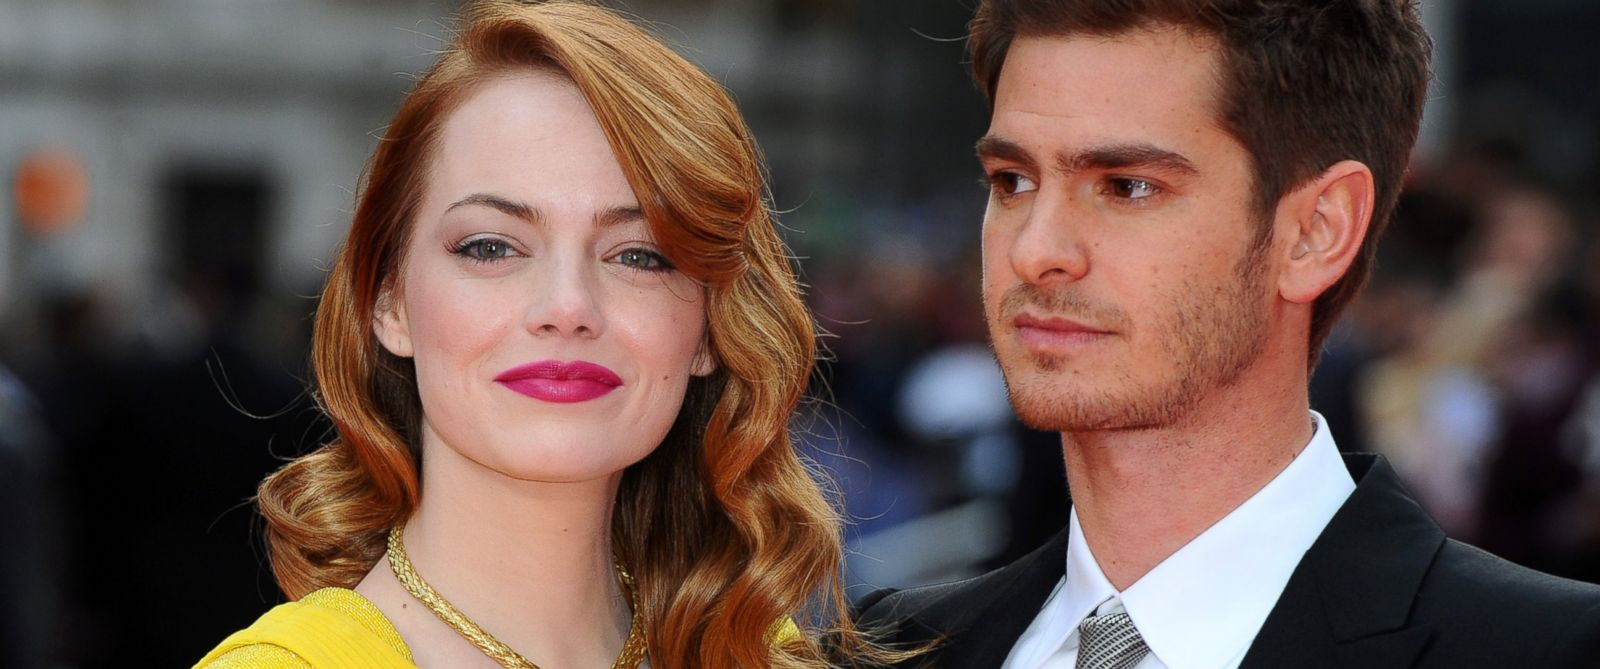 "PHOTO: Emma Stone and Andrew Garfield attend the World Premiere of ""The Amazing Spider-Man 2"" at Odeon Leicester Square, April 10, 2014 in London."